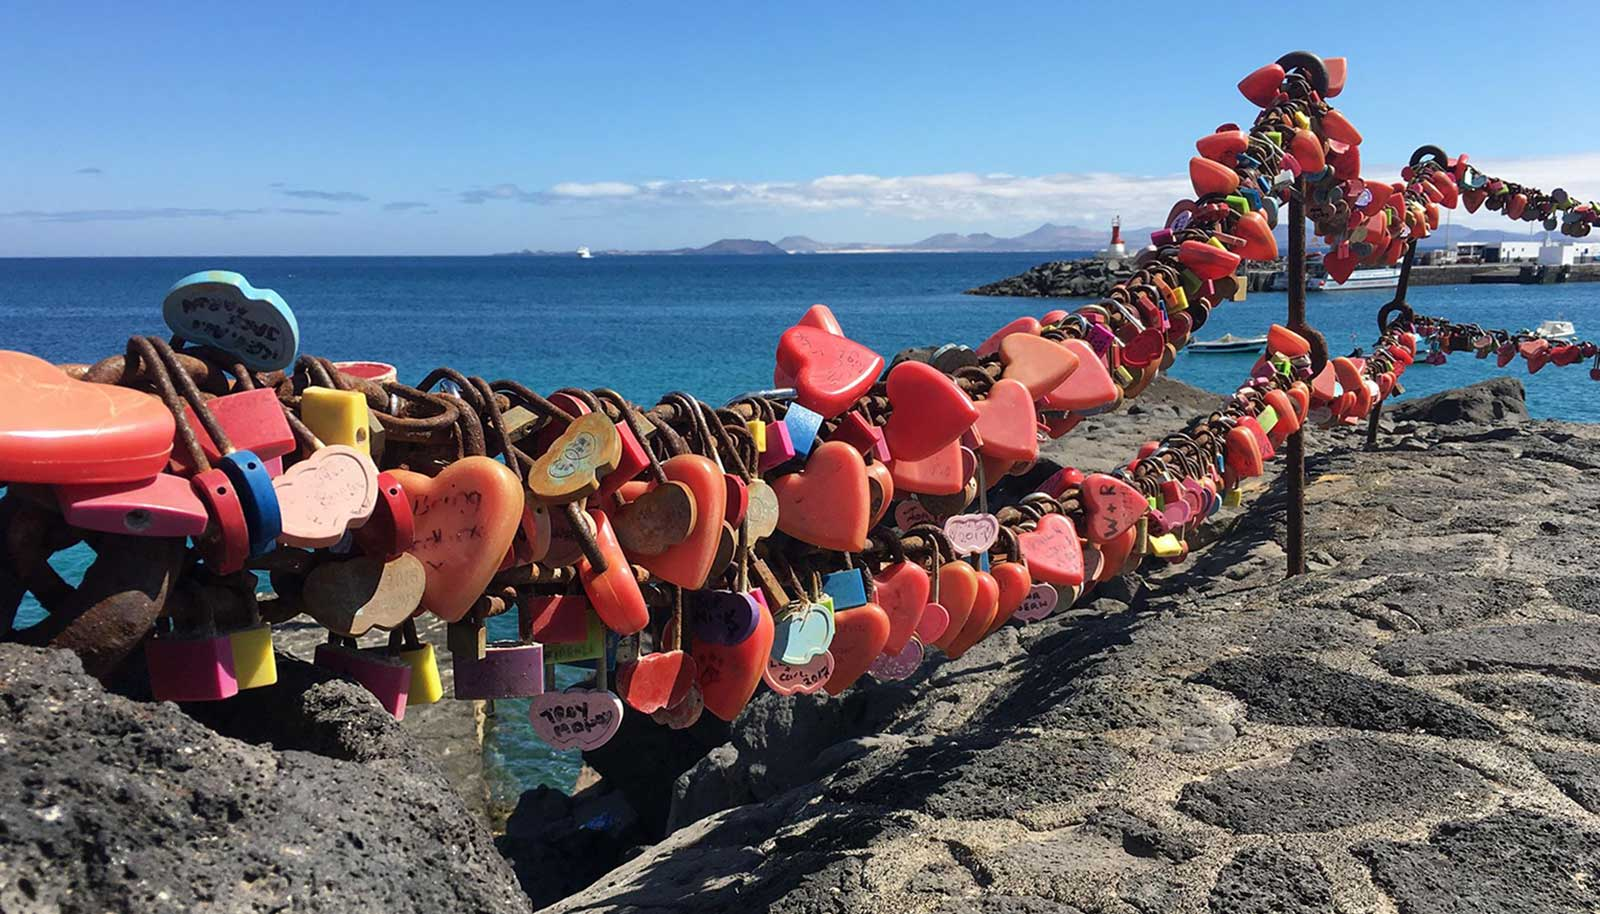 Love locks in Playa Blanca, Lanzarote